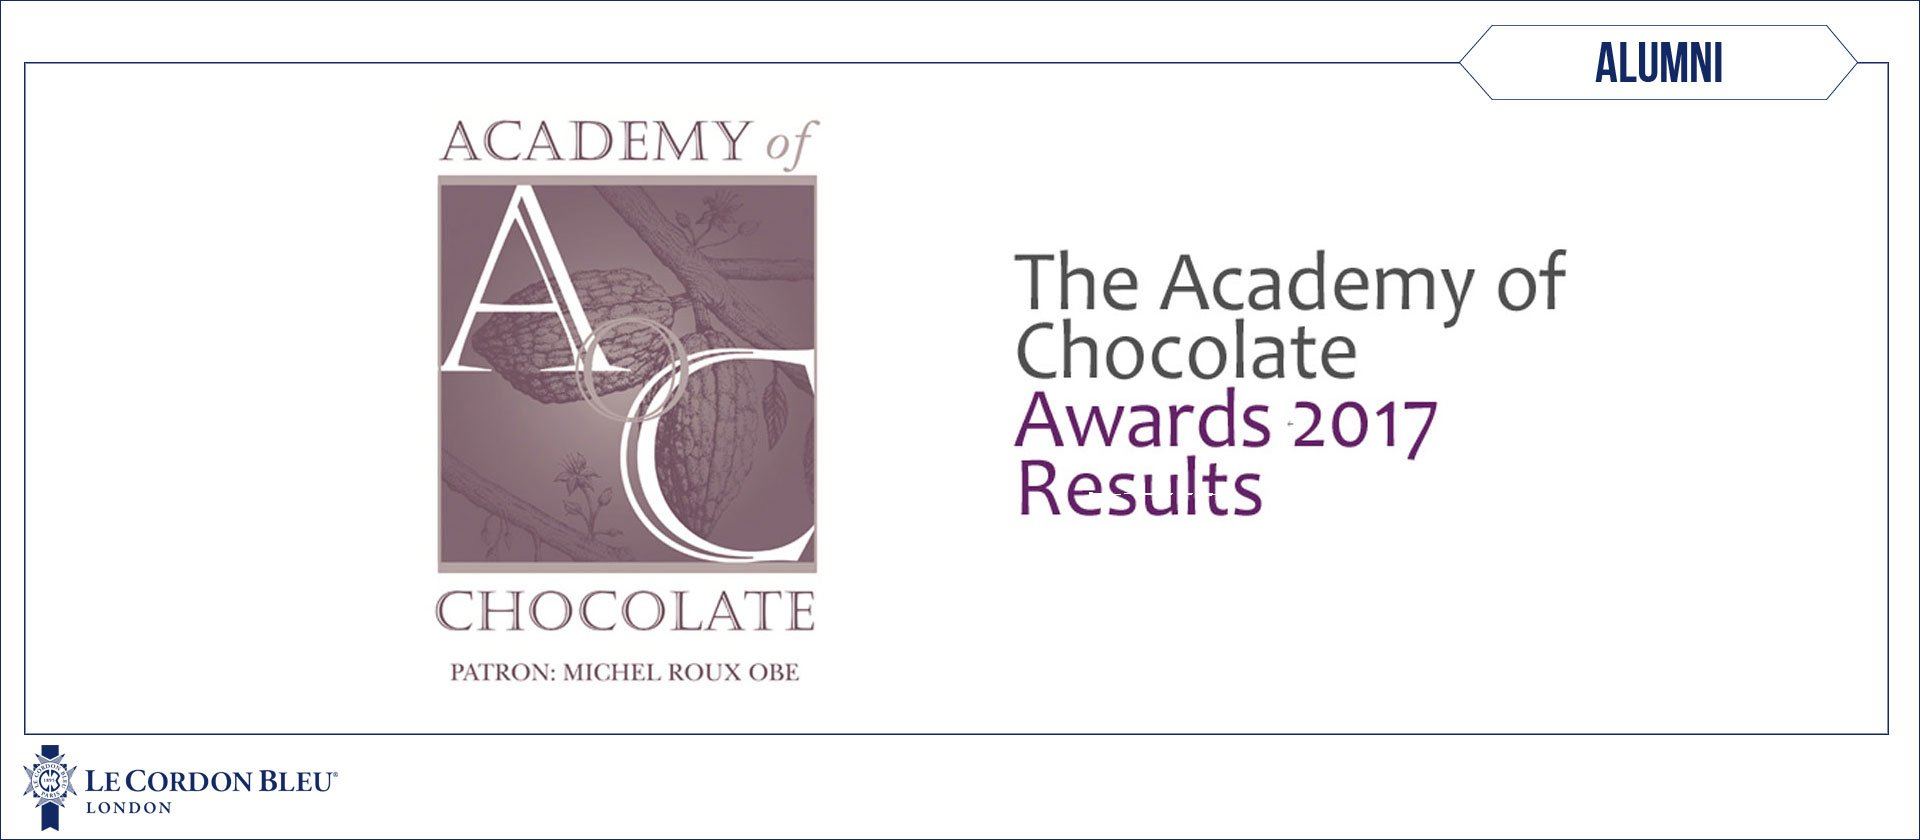 The Academy of Chocolate Awards 2017